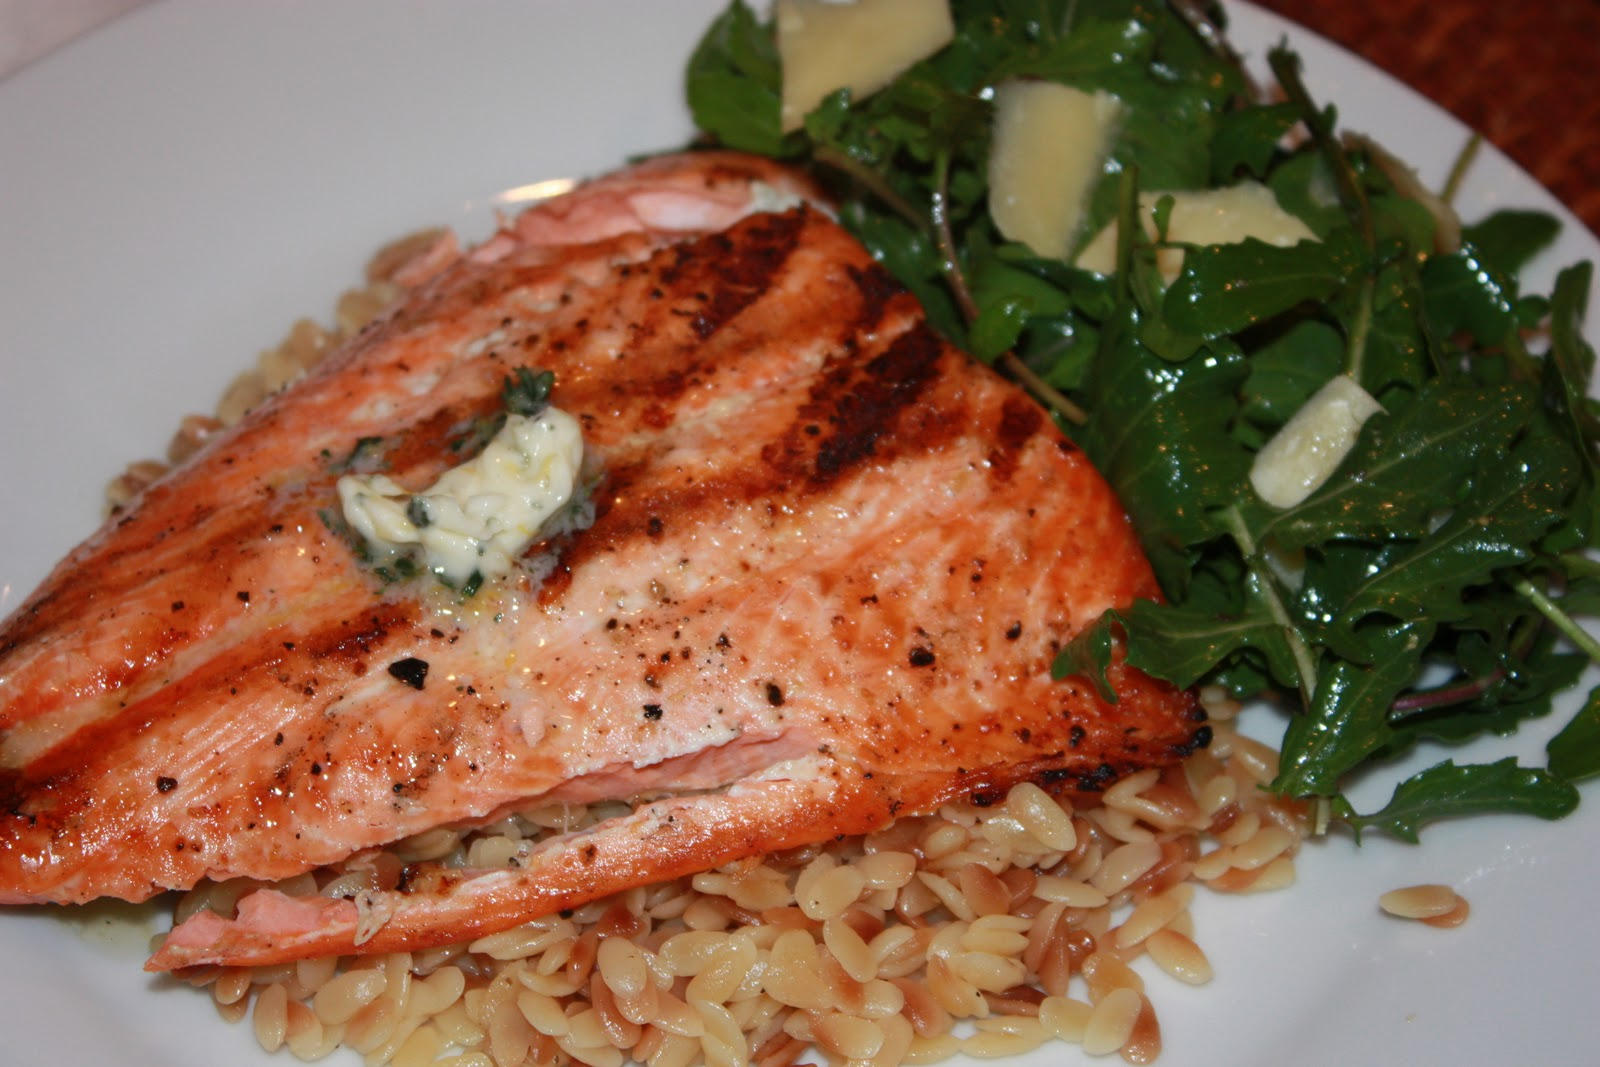 ... For More: Grilled Salmon with Herb and Meyer Lemon Compound Butter